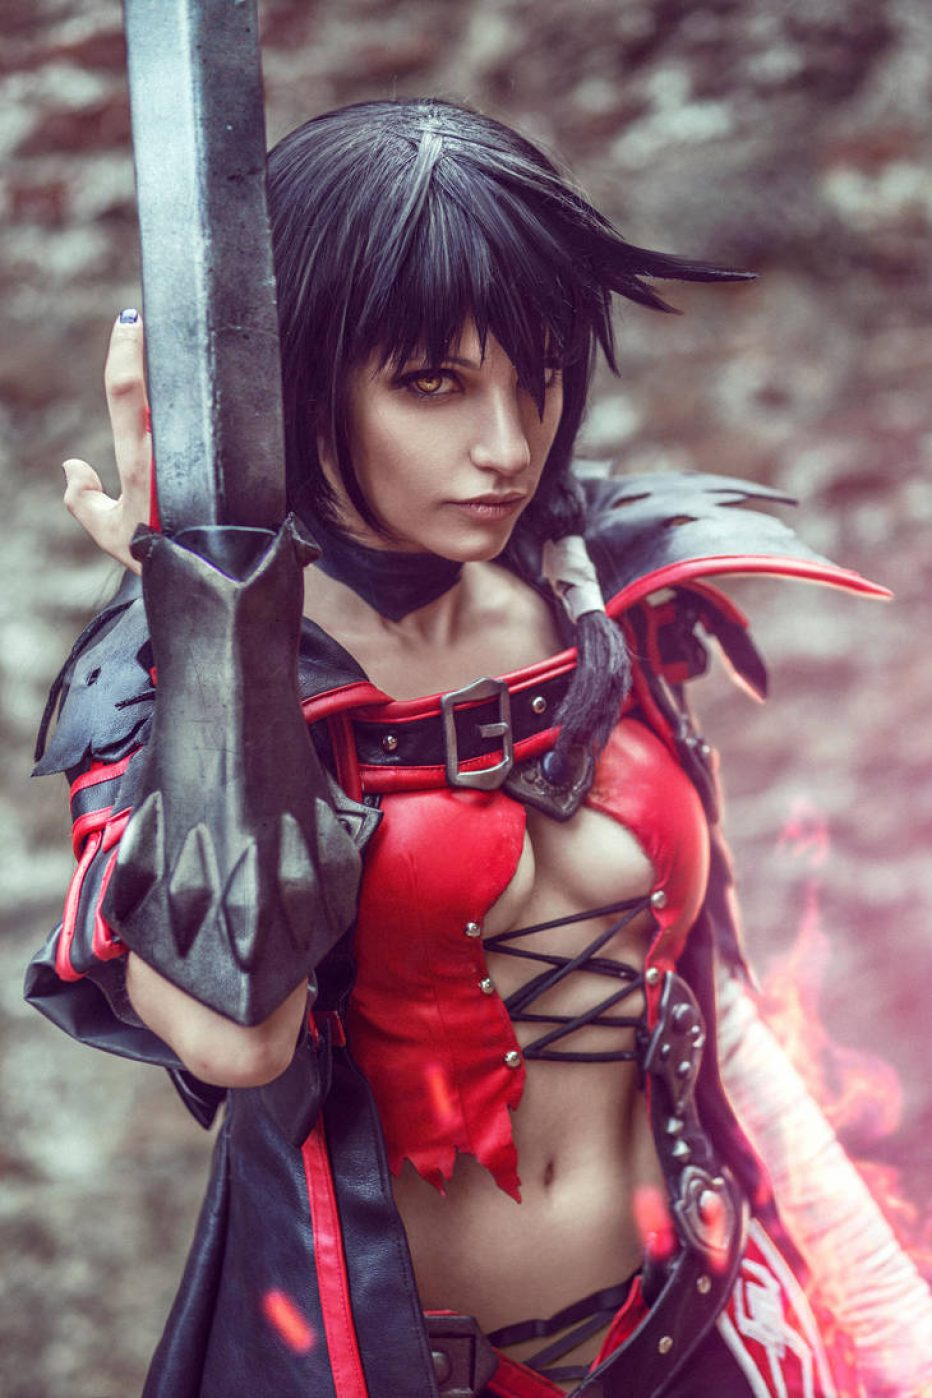 Velvet-Crowe-Tales-of-Berseria-Cosplay-Gamers-Heroes-7.jpg